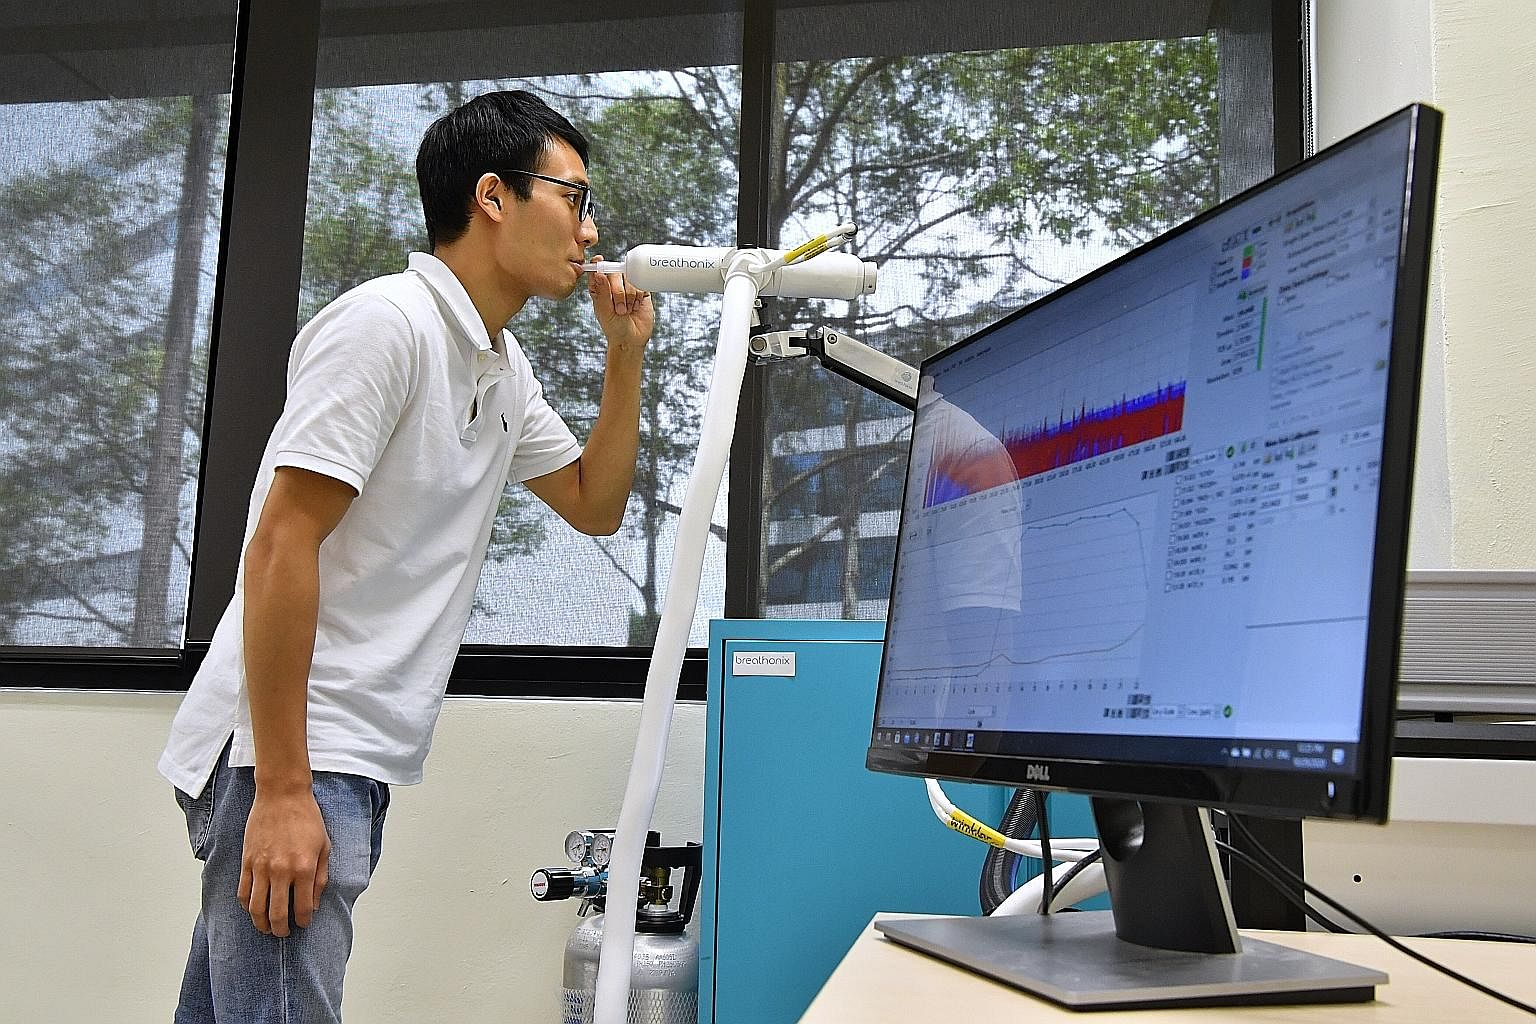 Covid-19 breath test may soon be used in trials at public locations, Health  News & Top Stories - The Straits Times